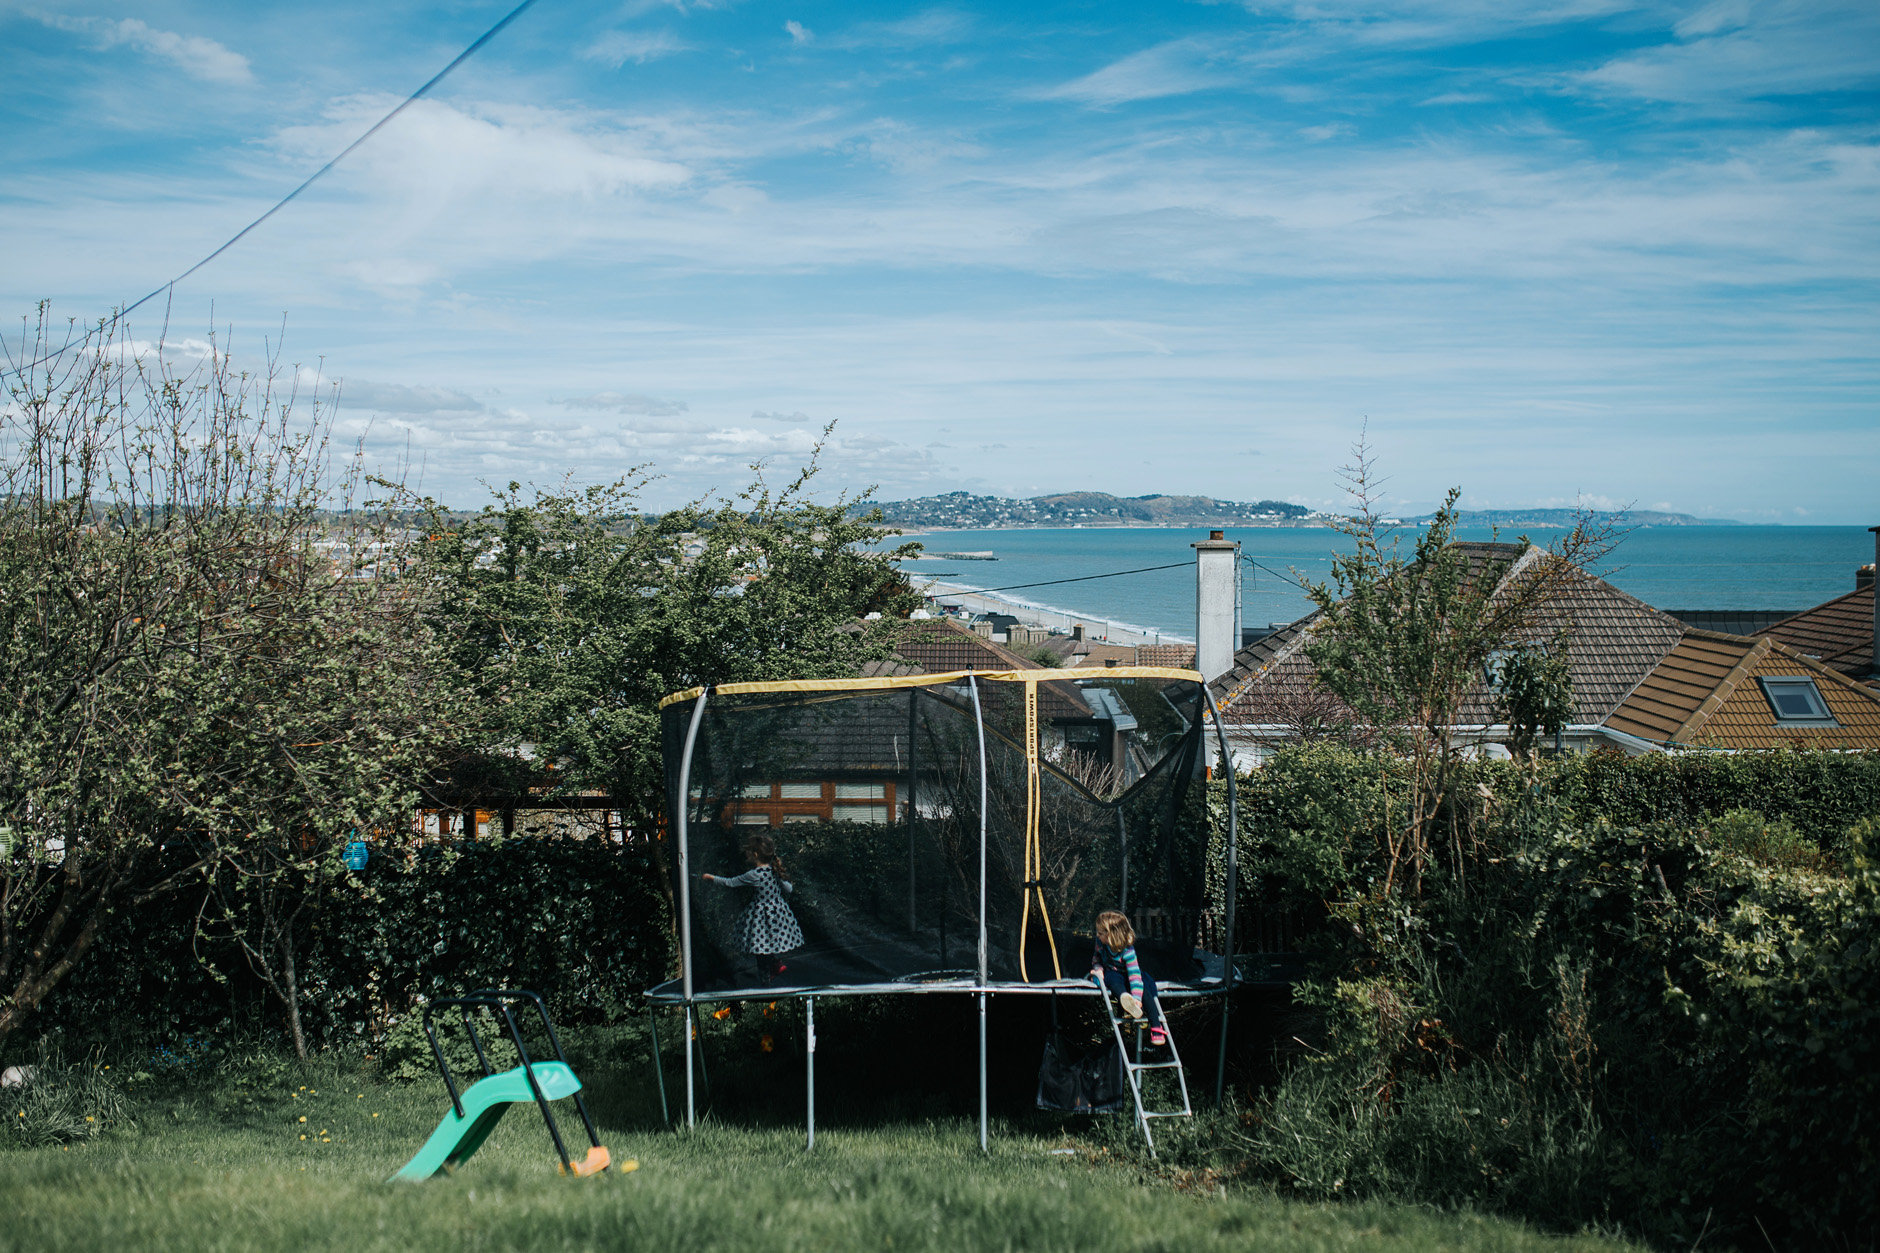 View of the sea, the garden and the trampoline with two girls on it